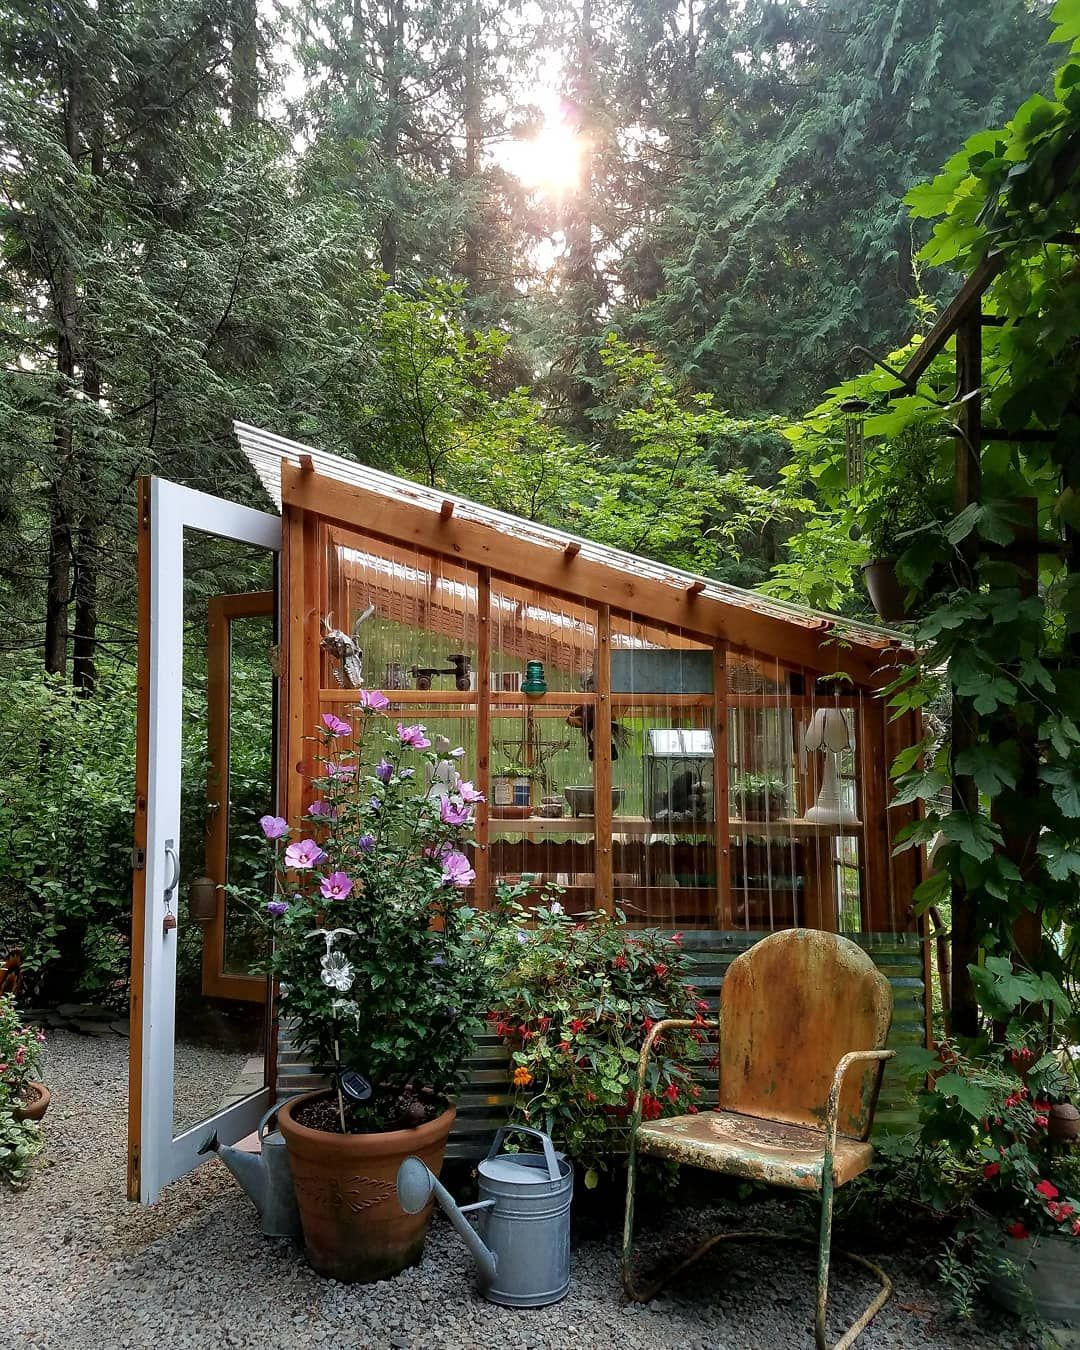 Backyard Greenhouses Range In Size Price And Style It All